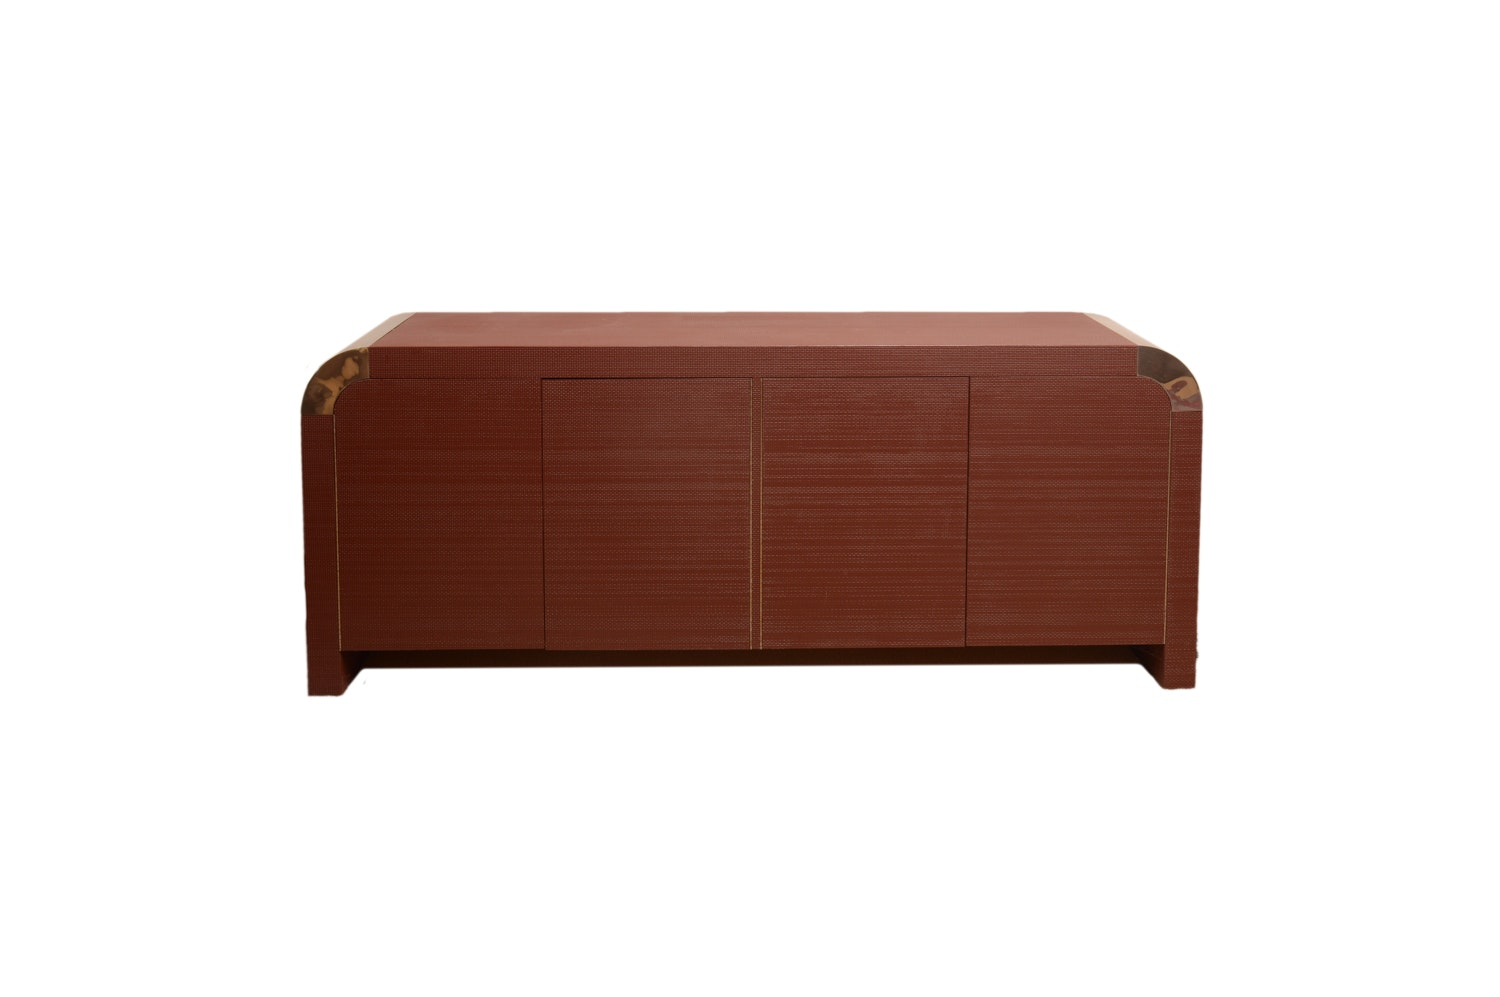 Deco Revival Style Textured Credenza